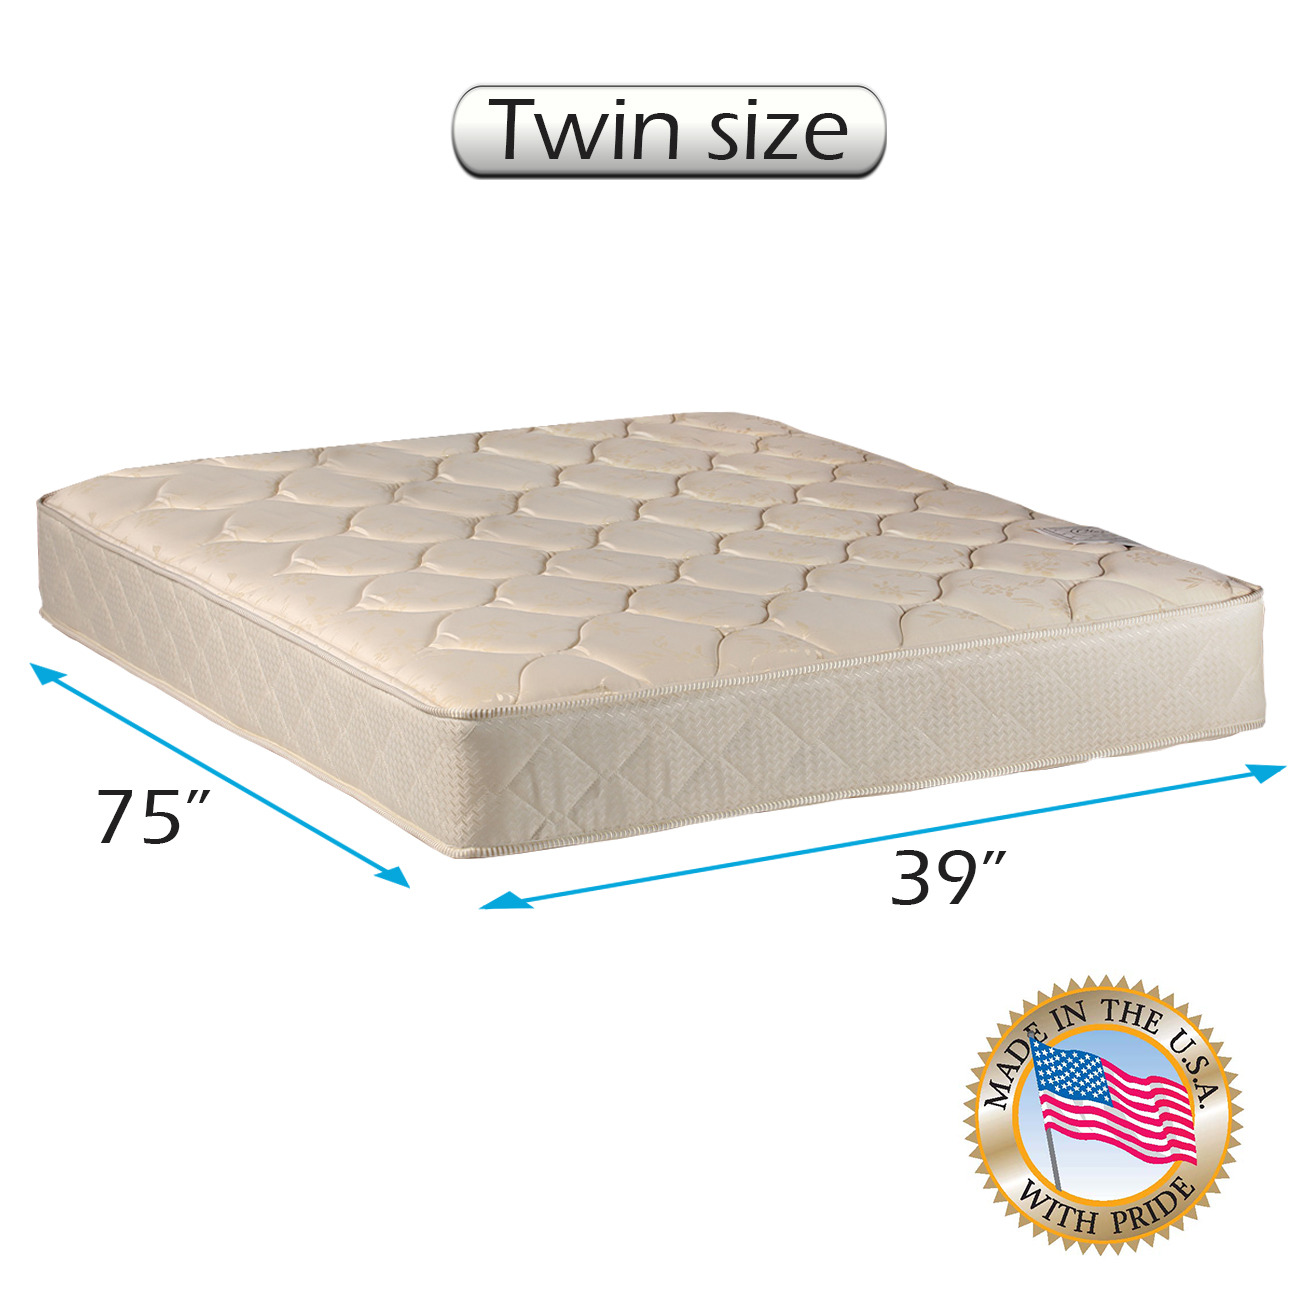 "Comfort Classic Gentle Firm (Twin - 39""x75""x9"") Mattress Only - Fully Assembled, Orthopedic, Good for your back, Superior Quality - Long Lasting and 1 Sided - By Dream Solutions USA"